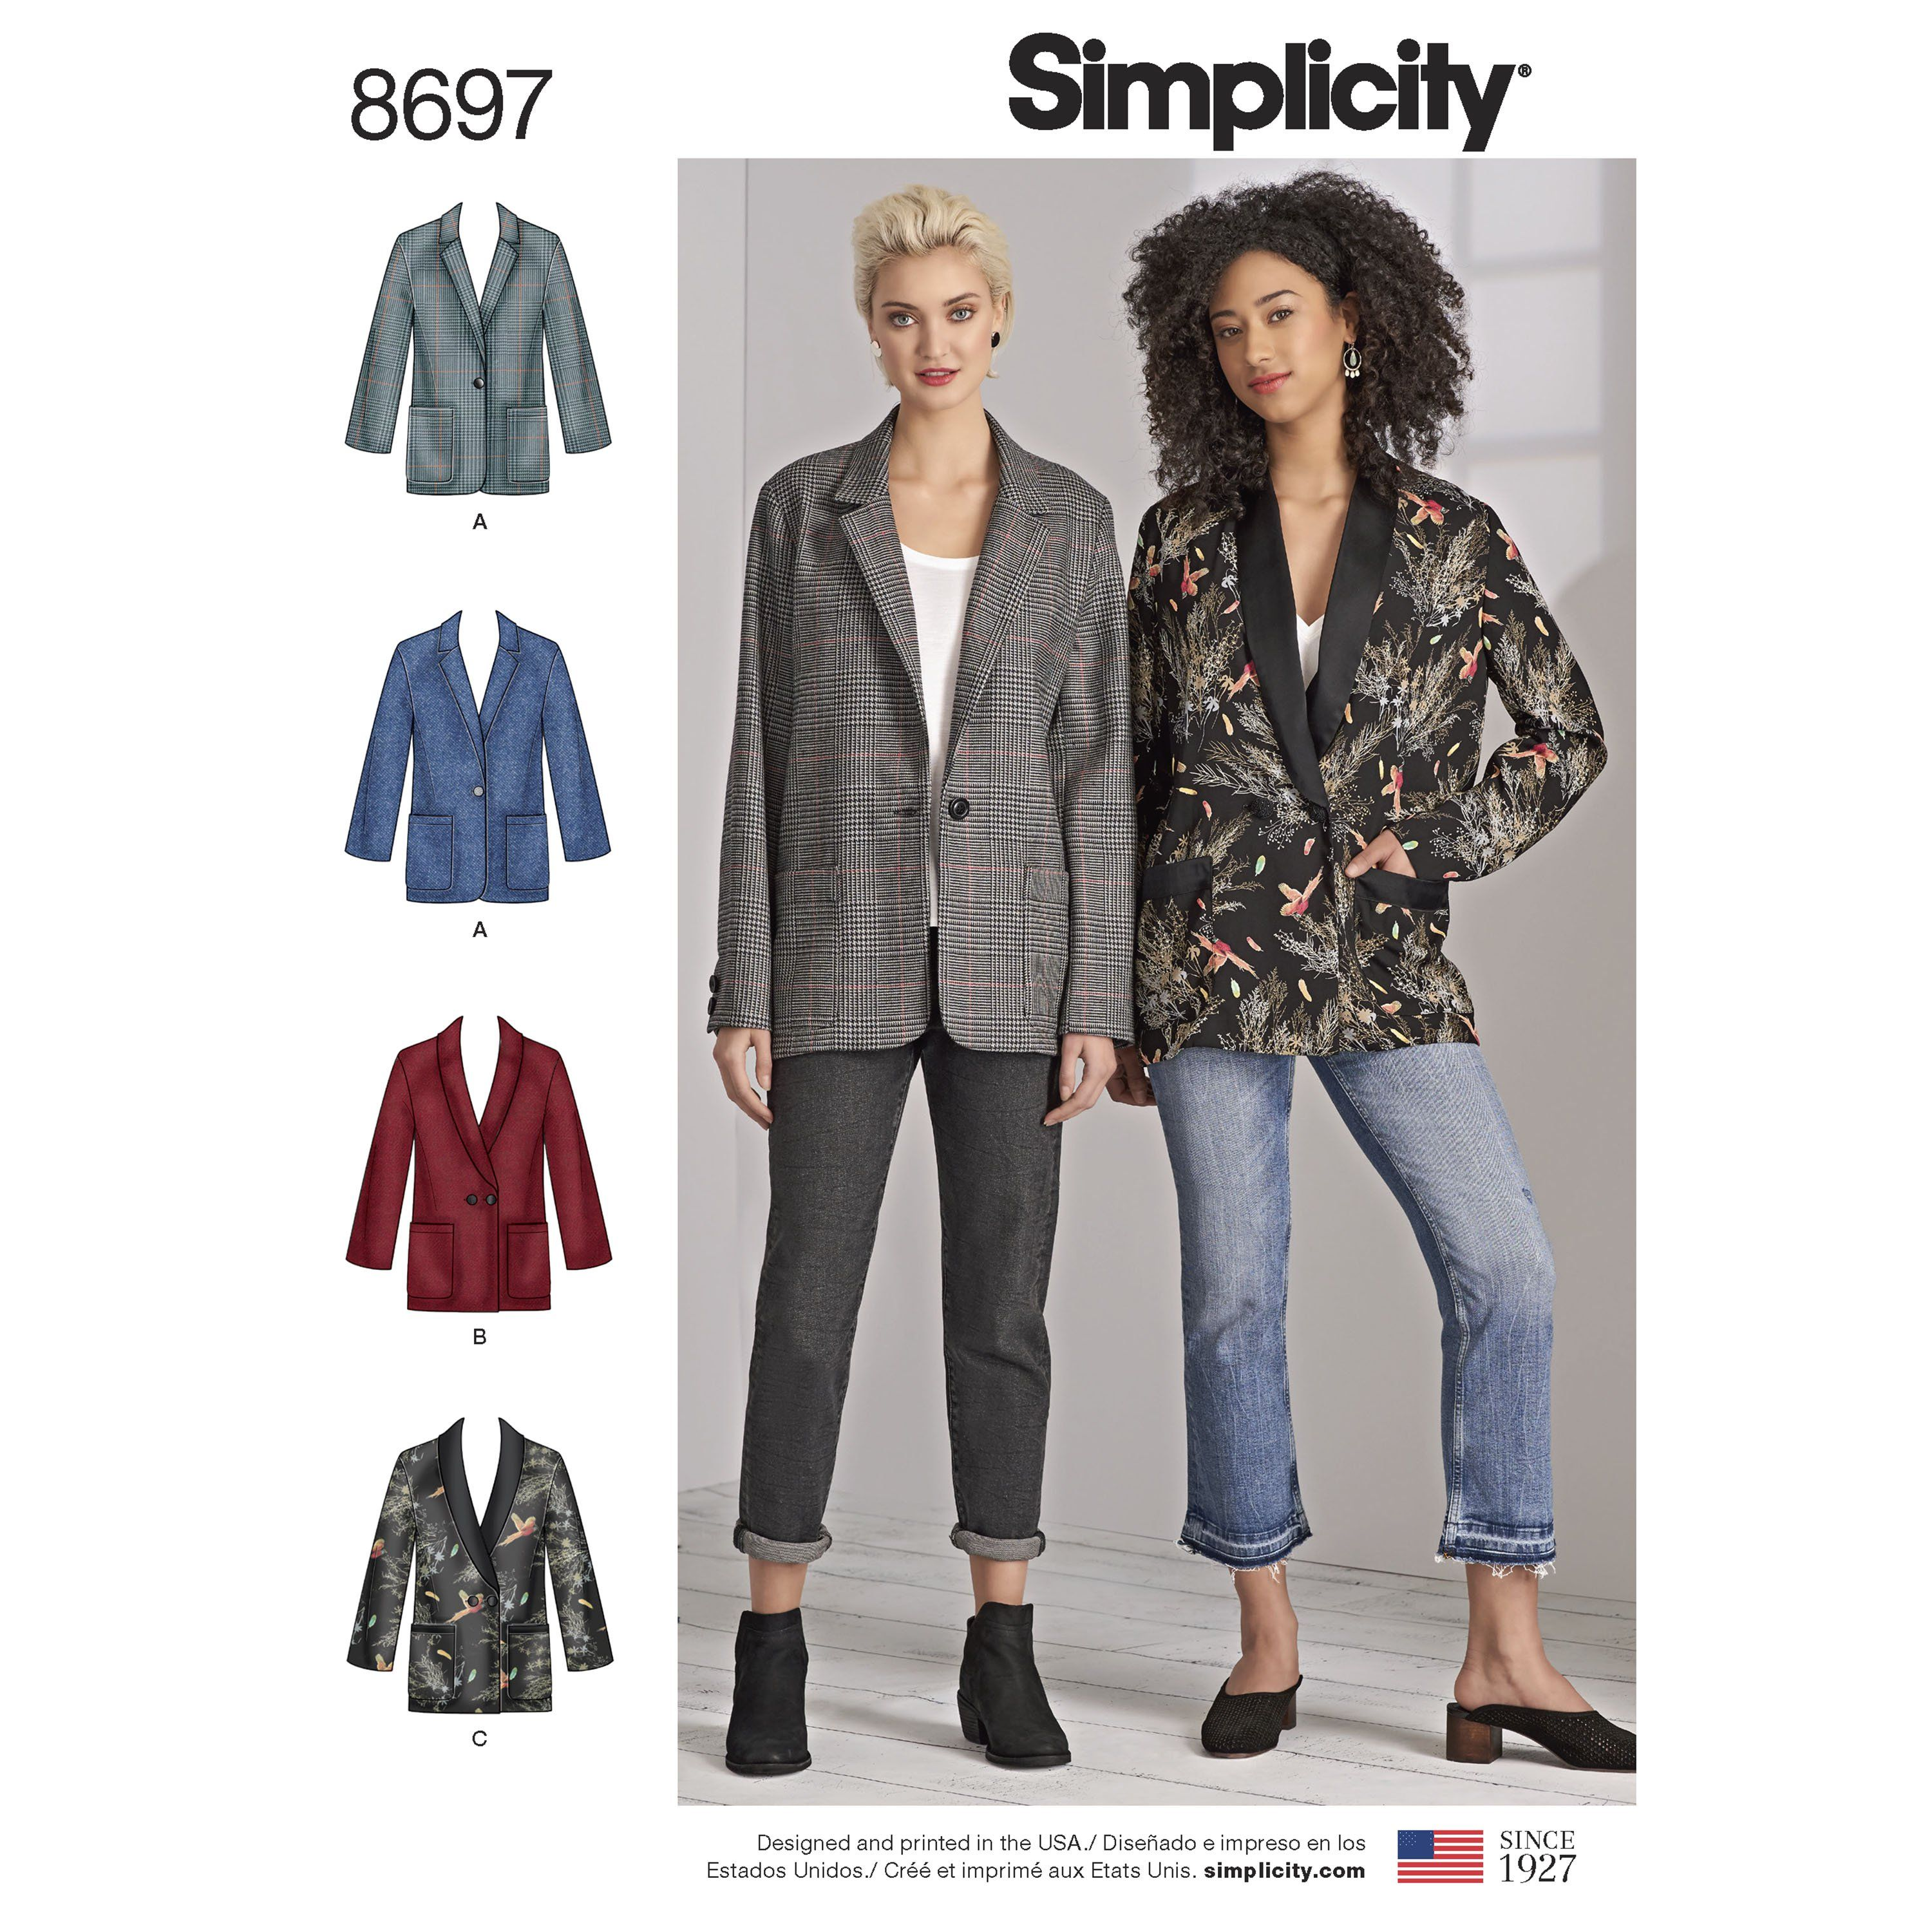 8cdeb47c0afe Simplicity 8697 Misses'/Women's Oversized Blazers   I wanna sew ...